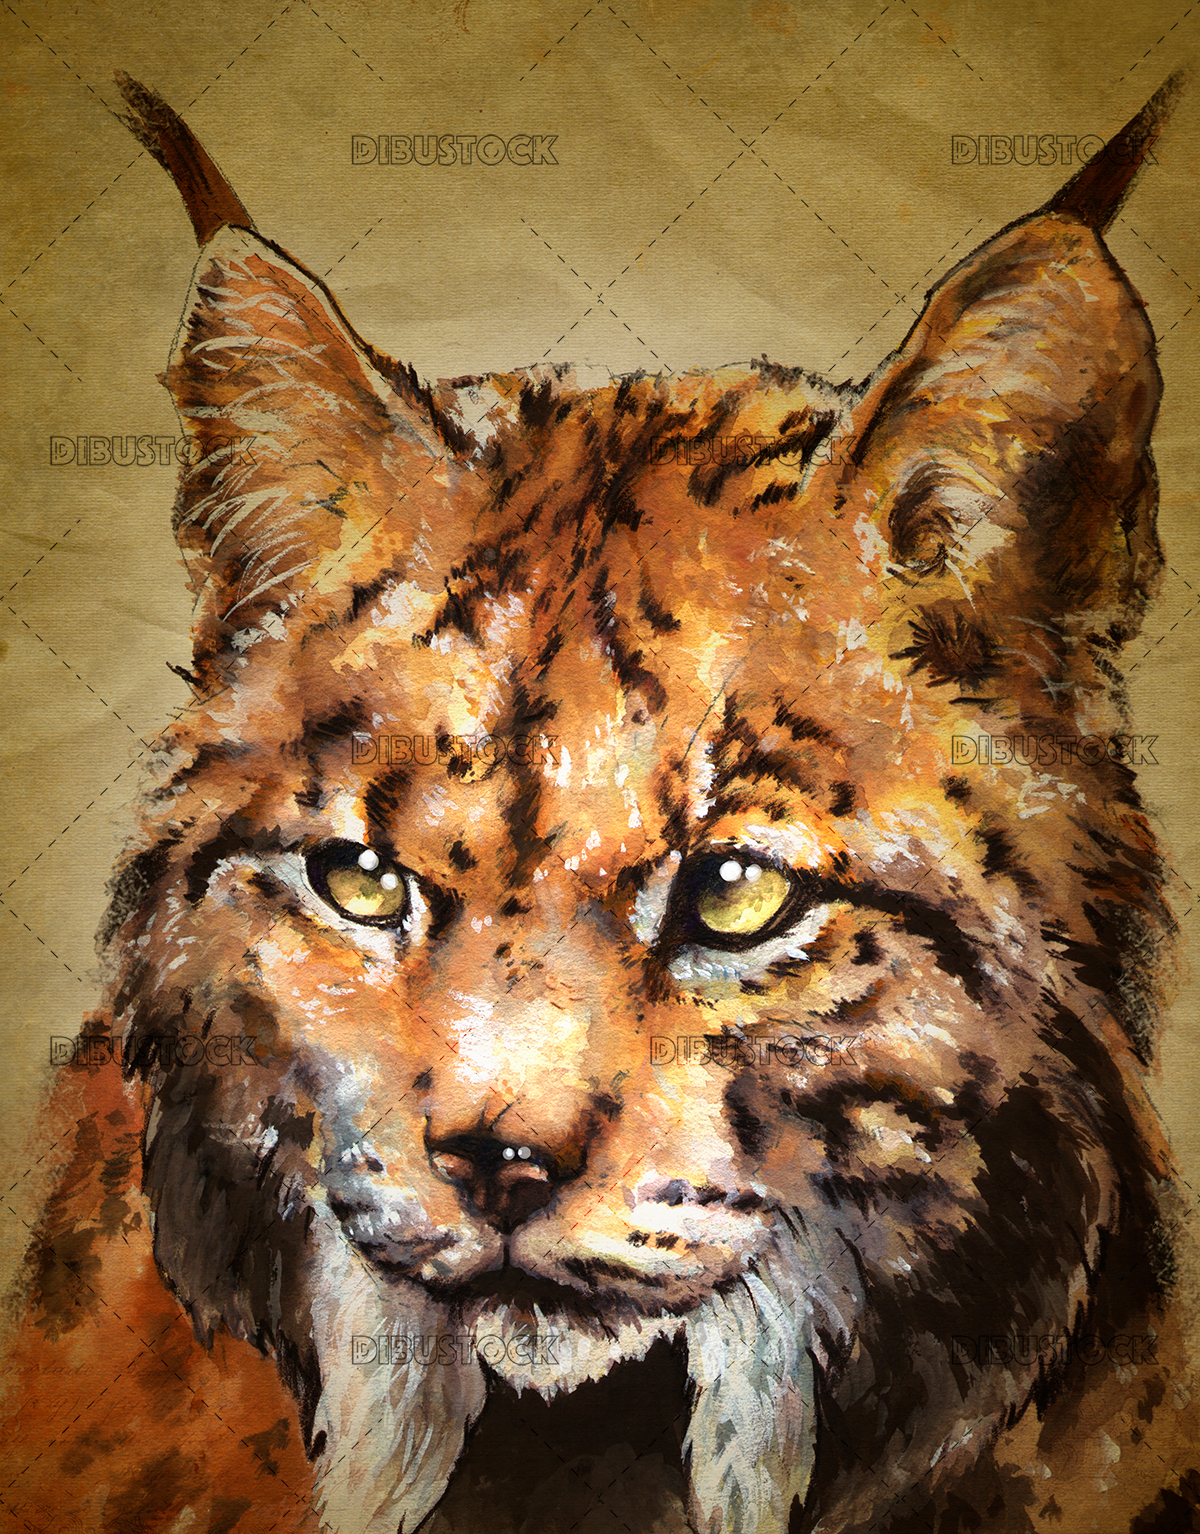 Lynx face illustration